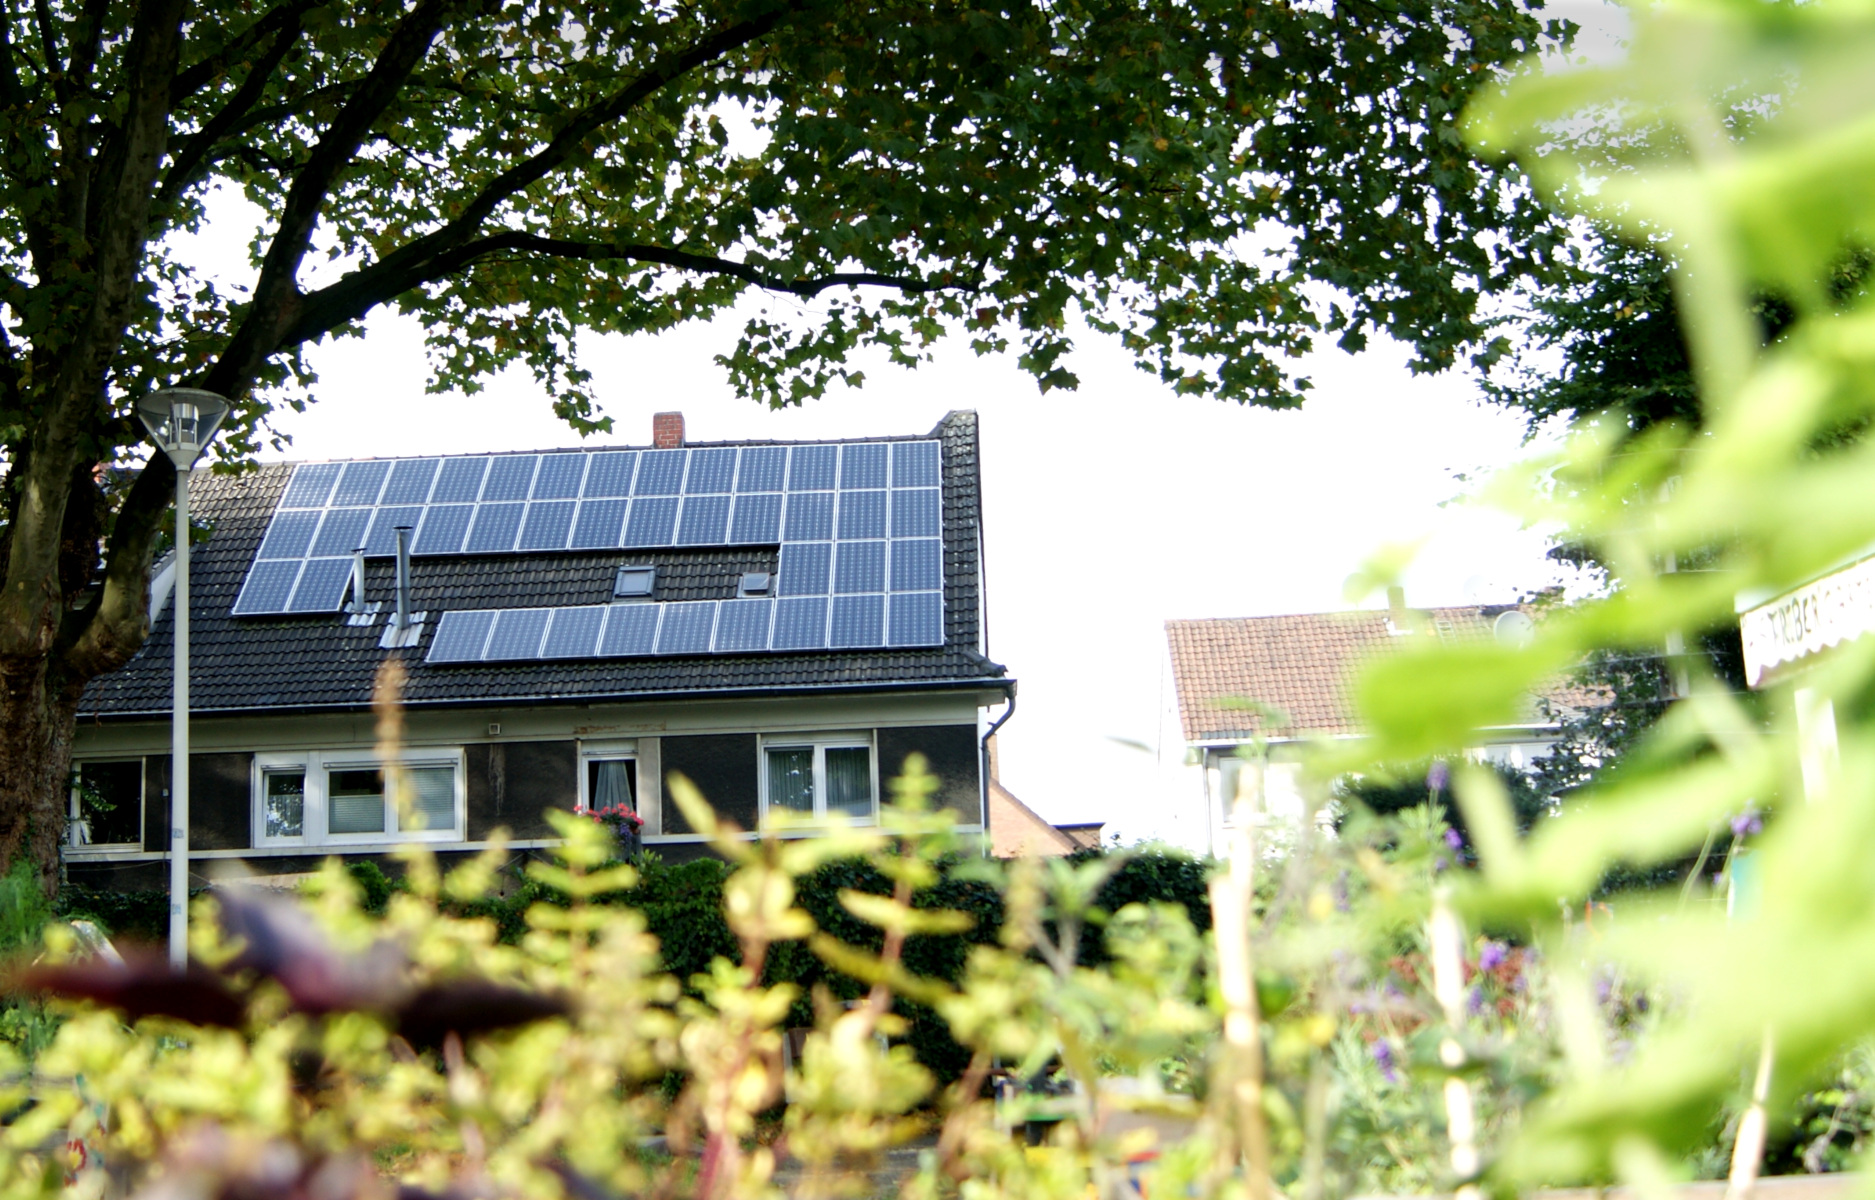 Rooftop PV on residential building